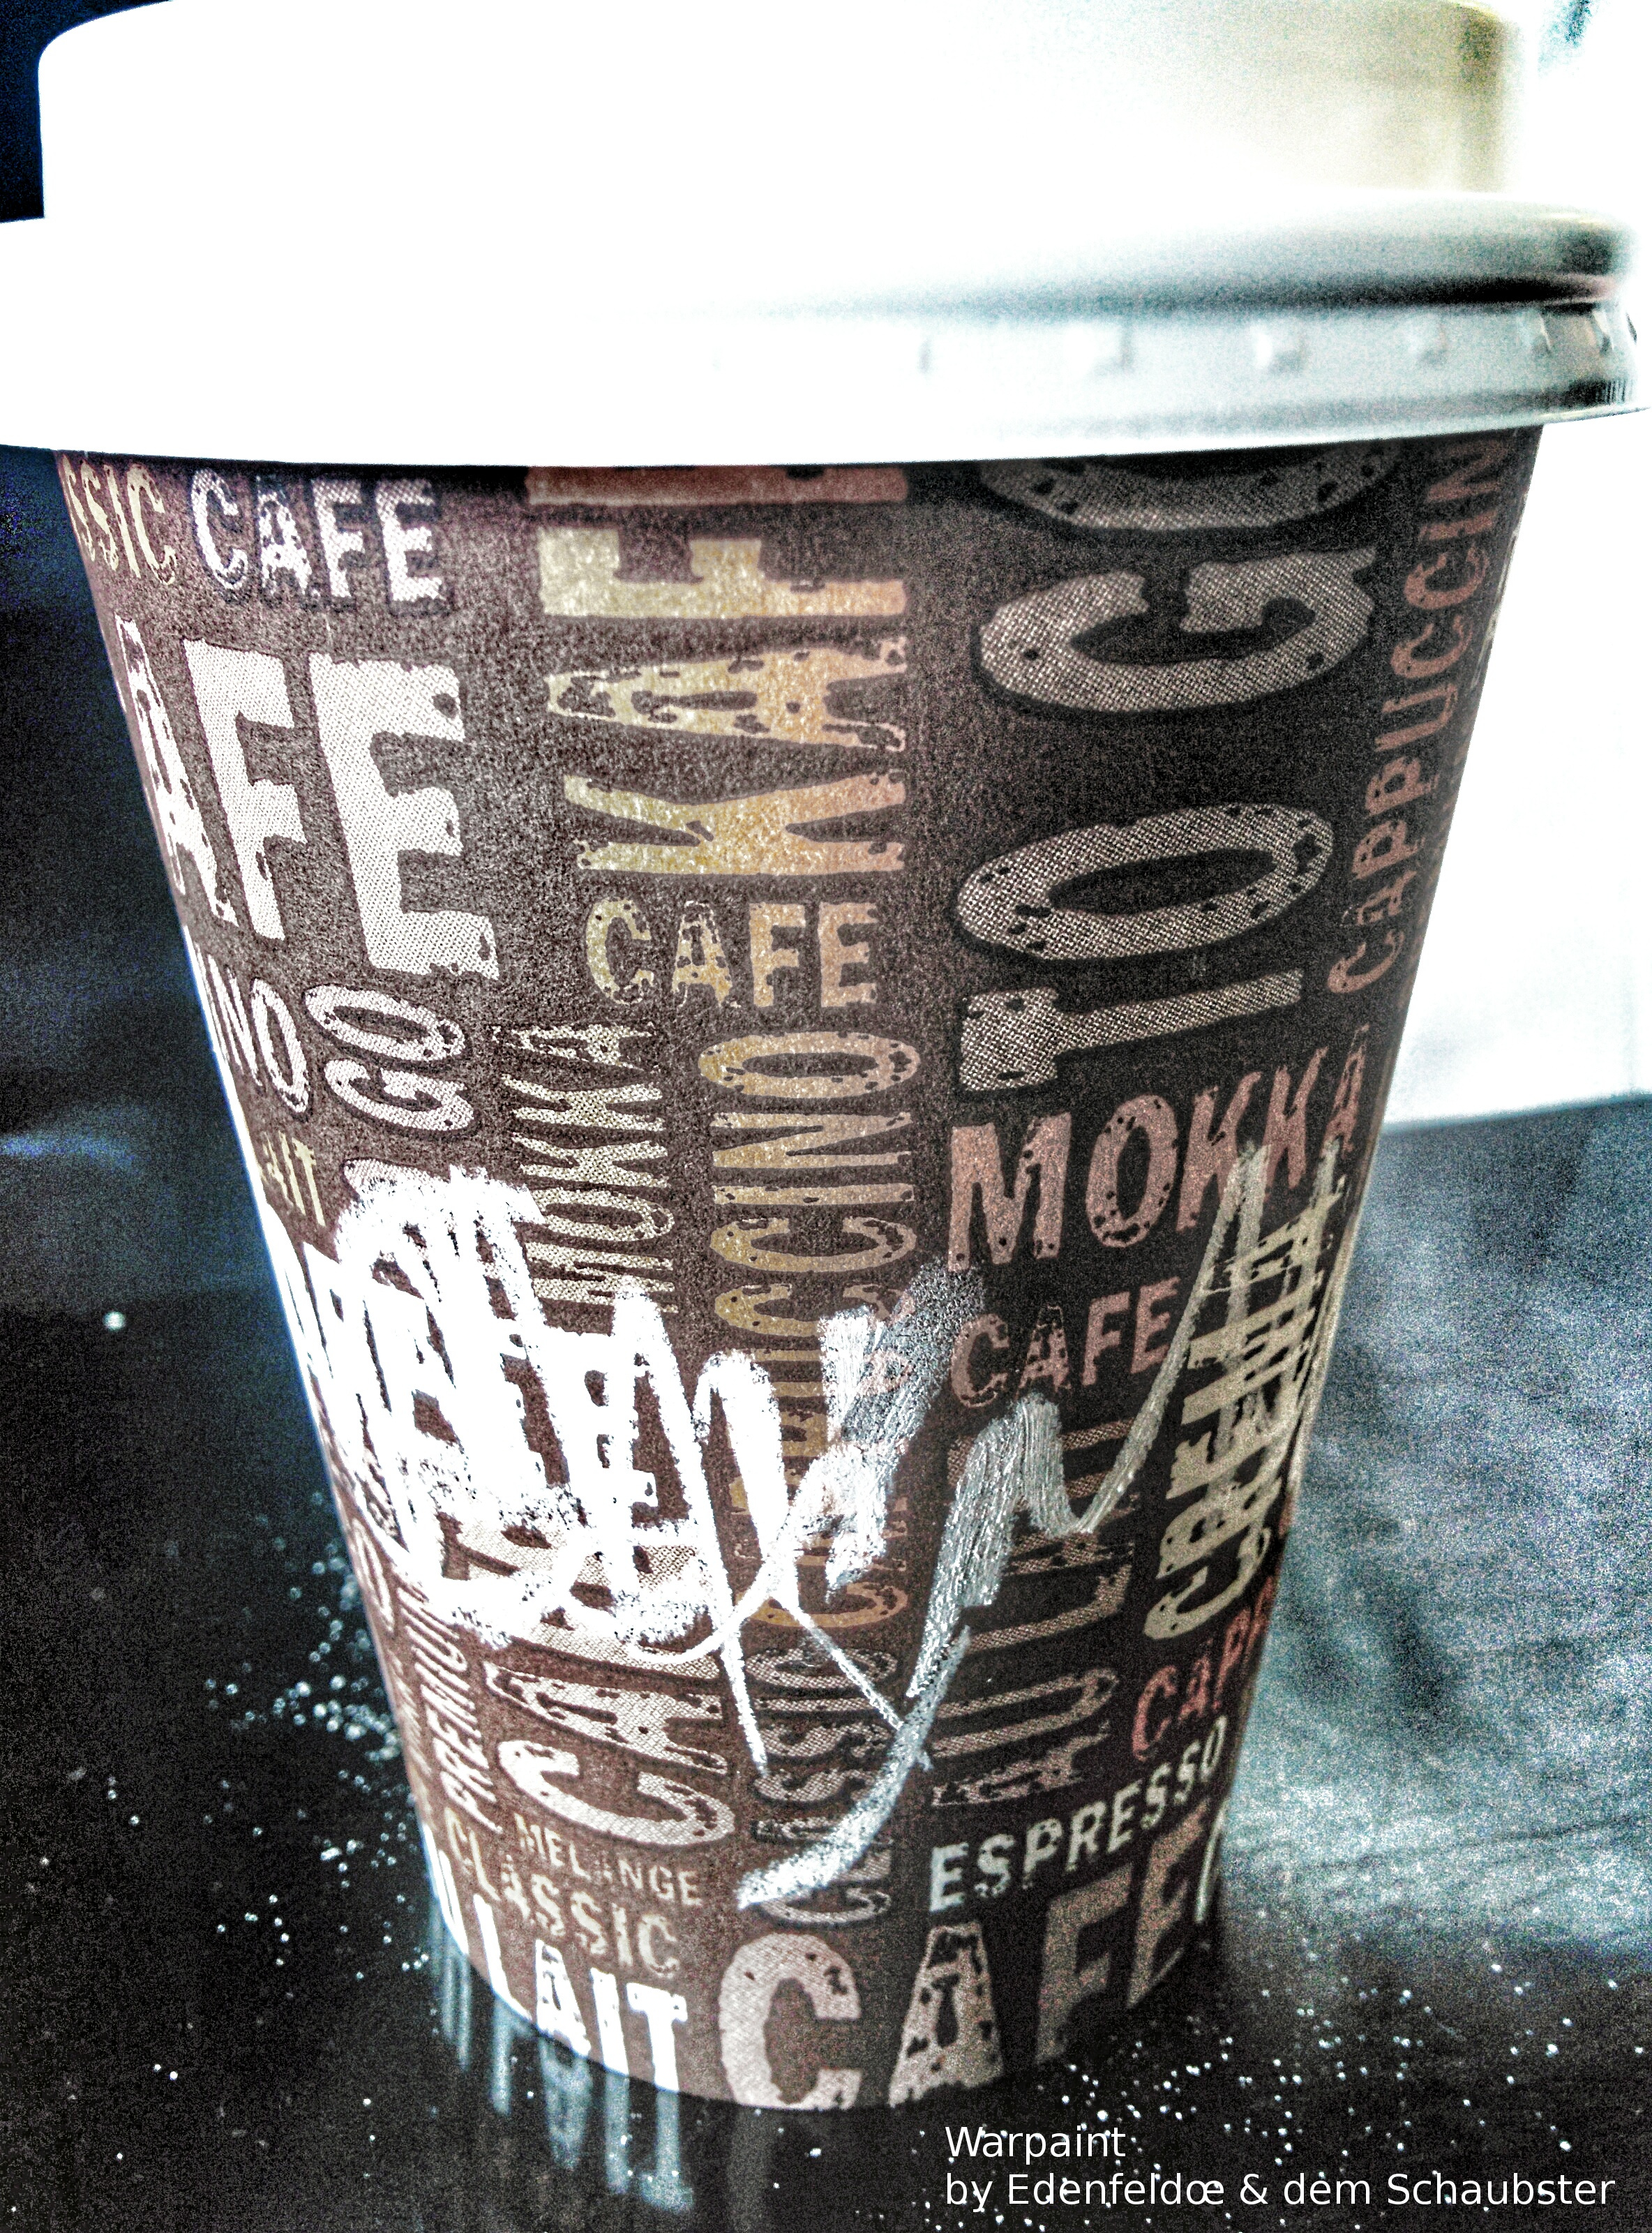 Image of a paper coffee mug with chalk markings on its side.